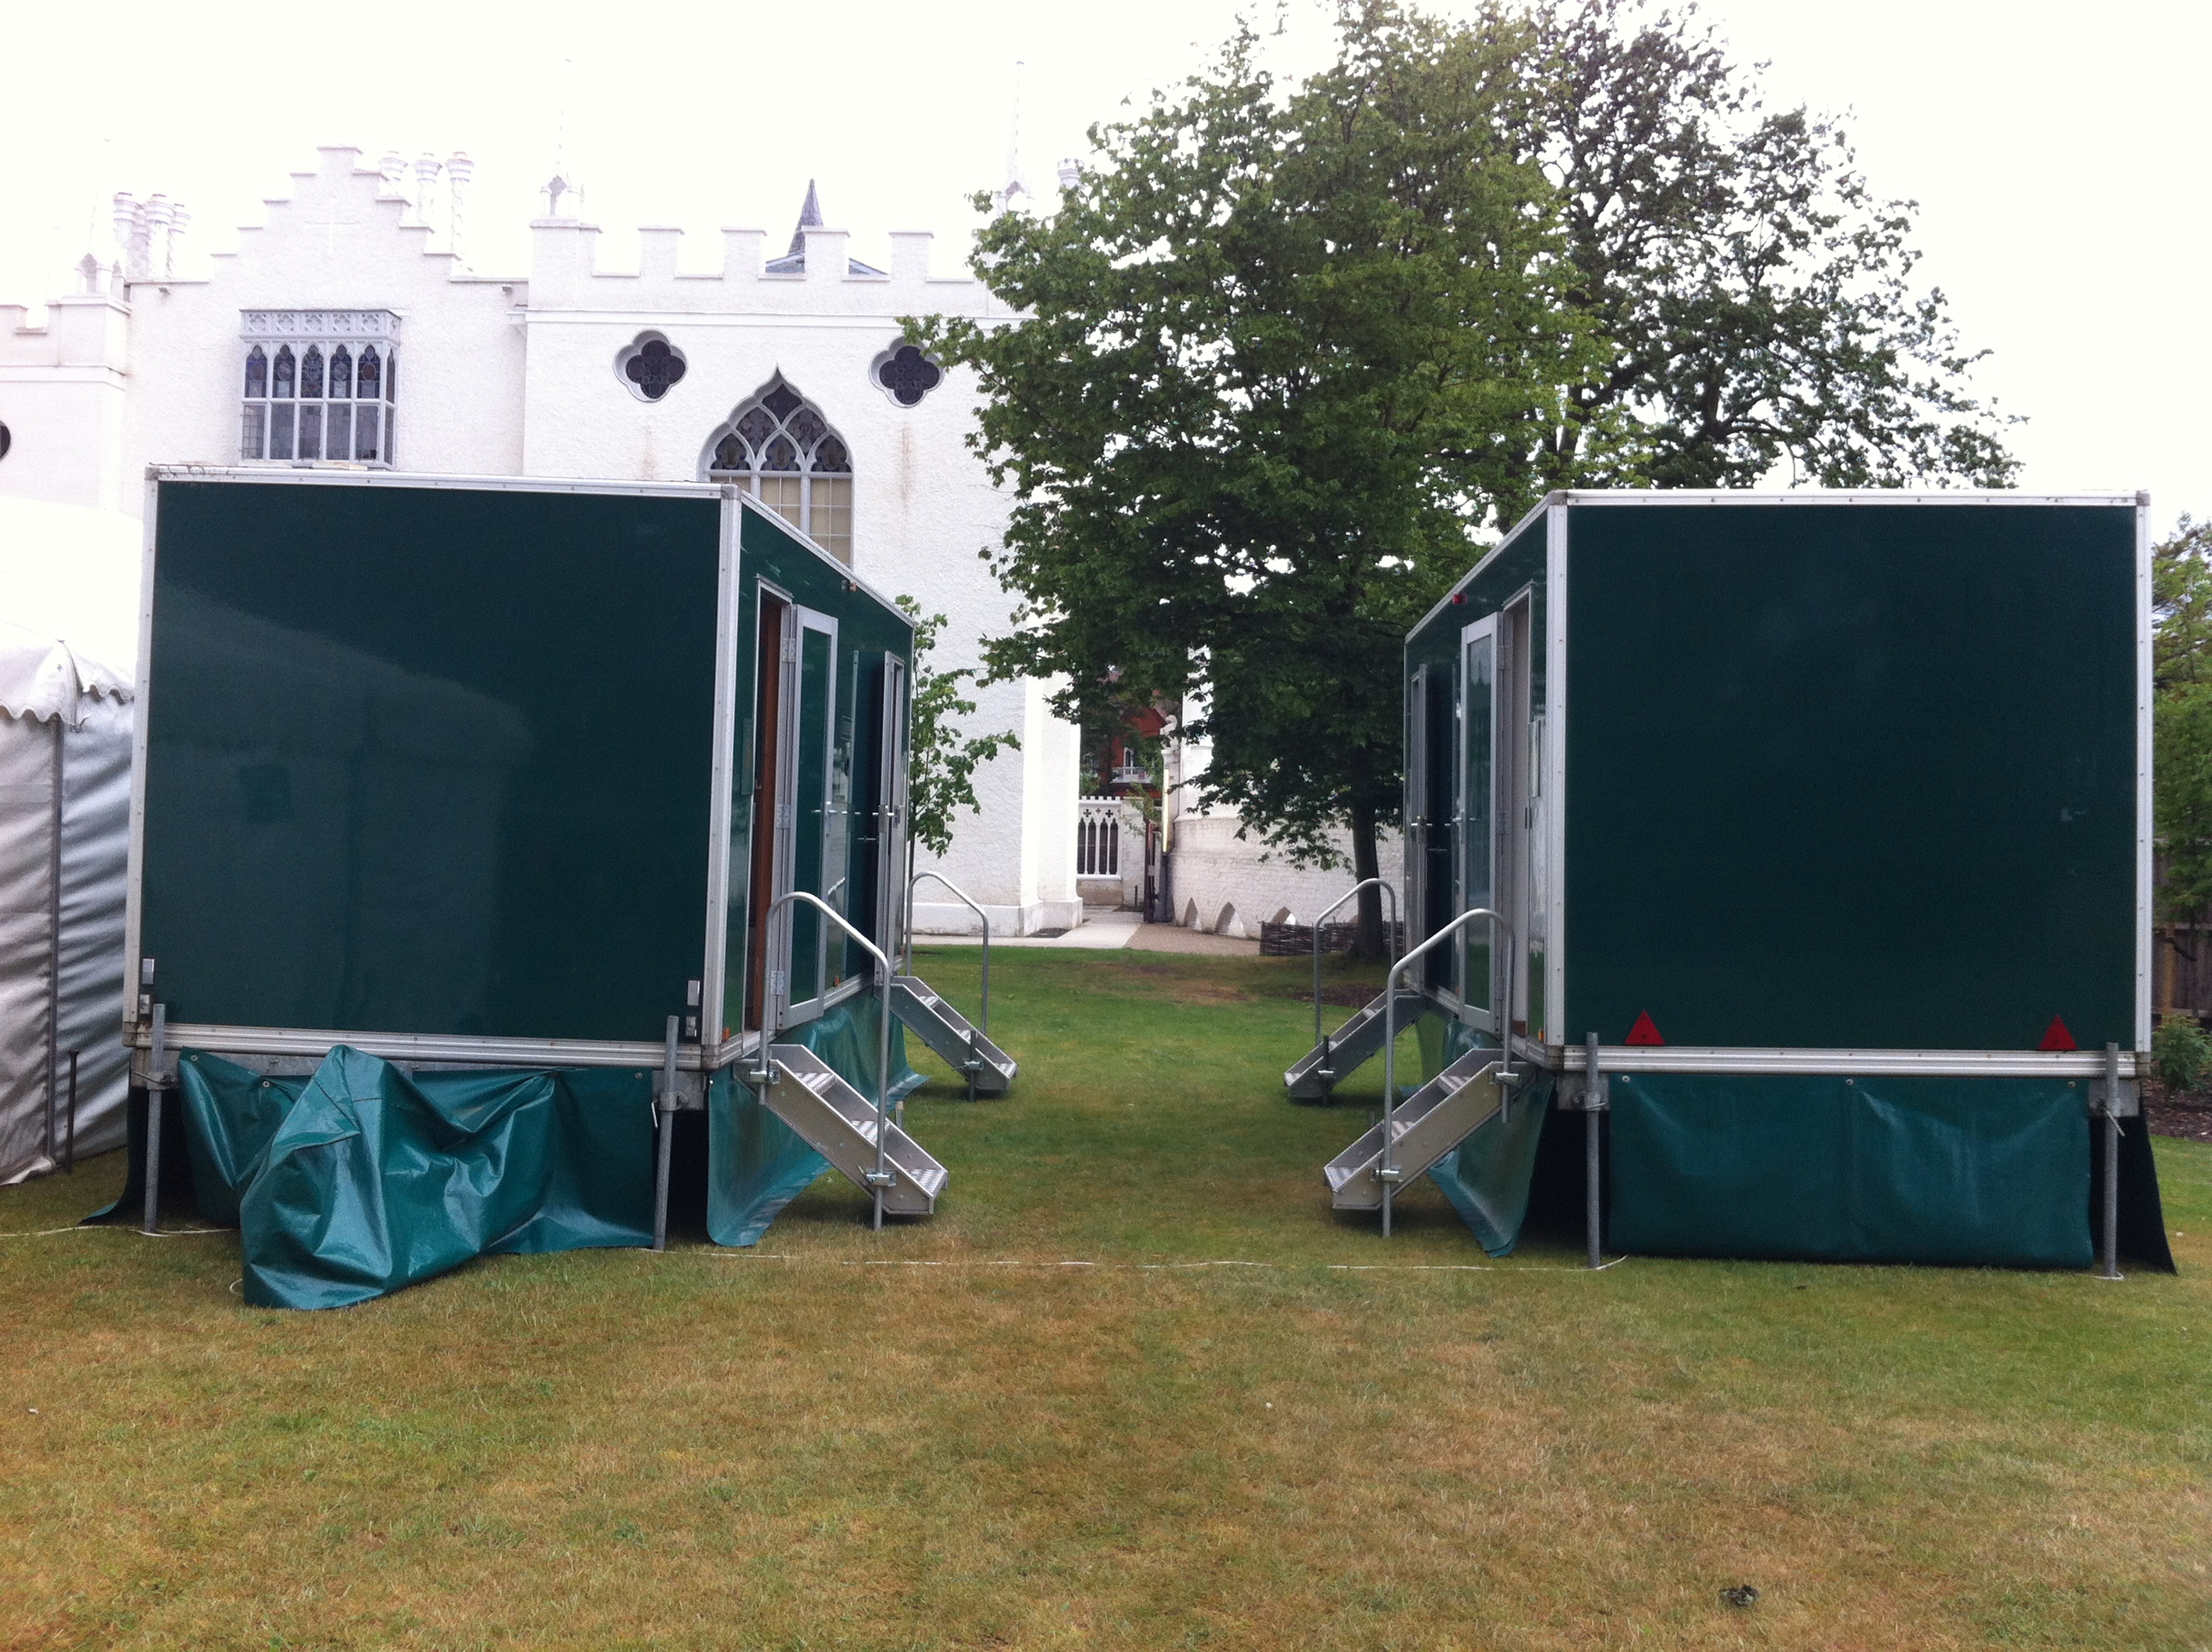 Deluxe loos luxury portable toilets luxury loos photo Deluxe portable bathrooms